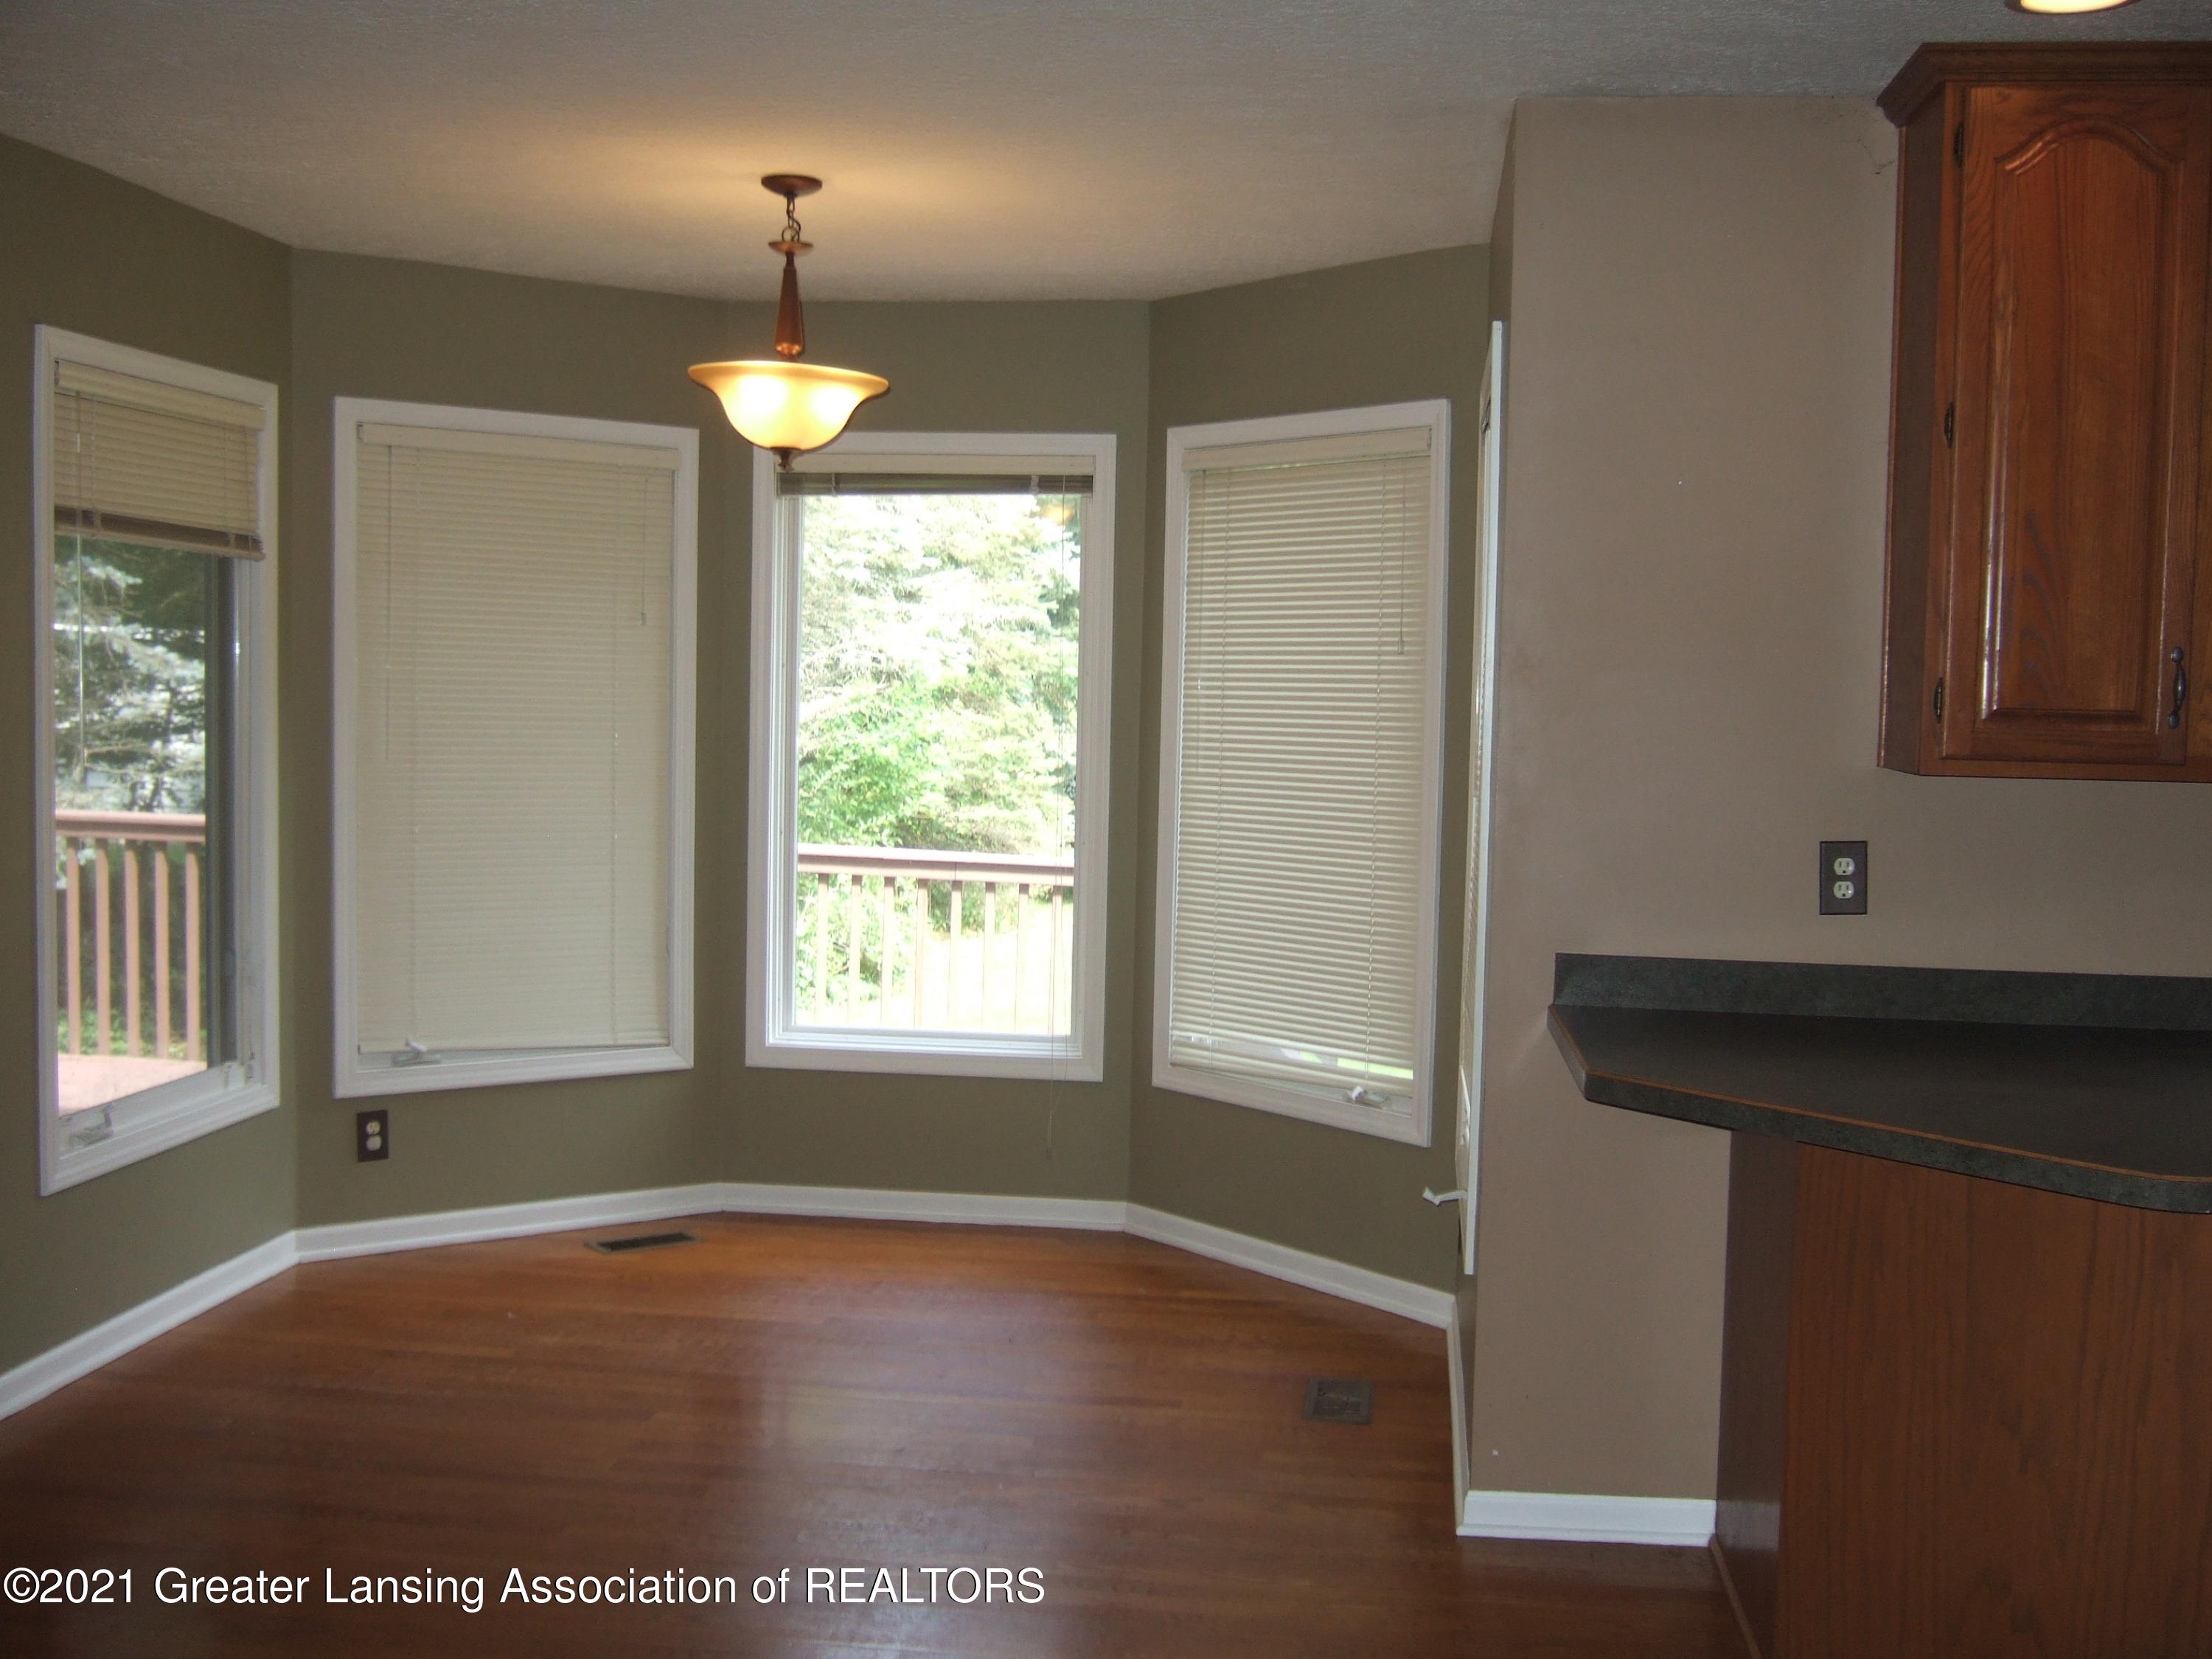 47 E Newman Rd - Dining Nook in Kitchen - 11